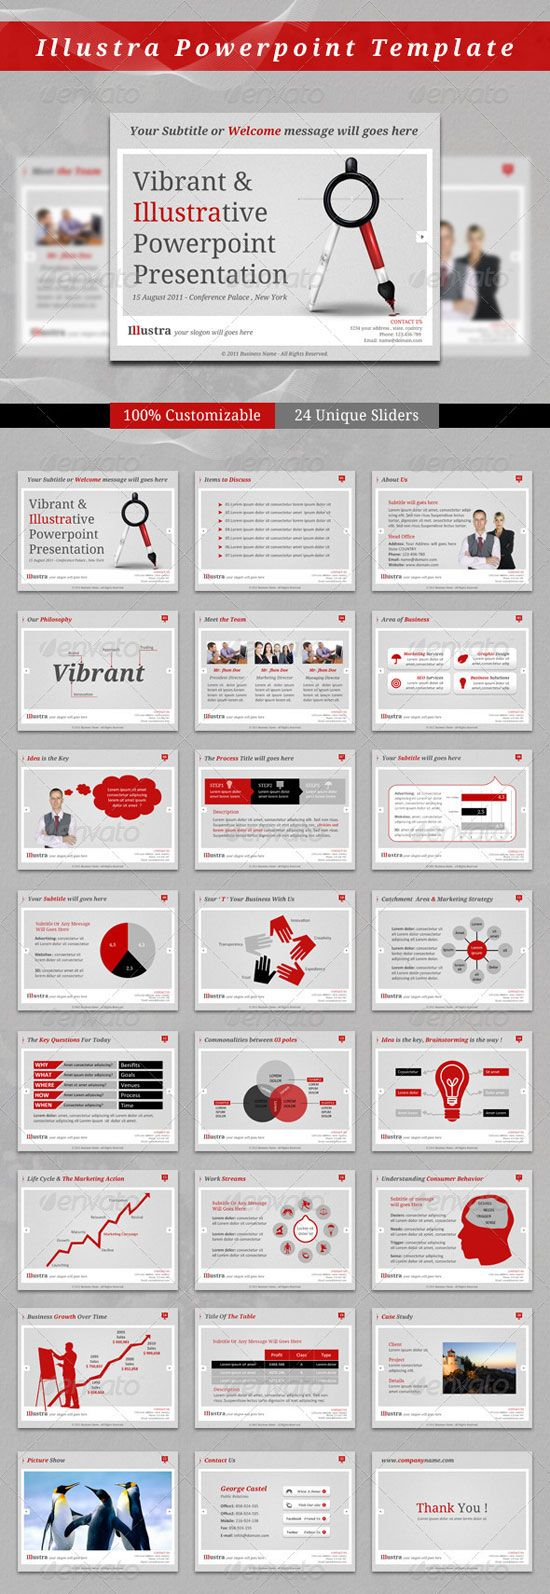 power point design & theme